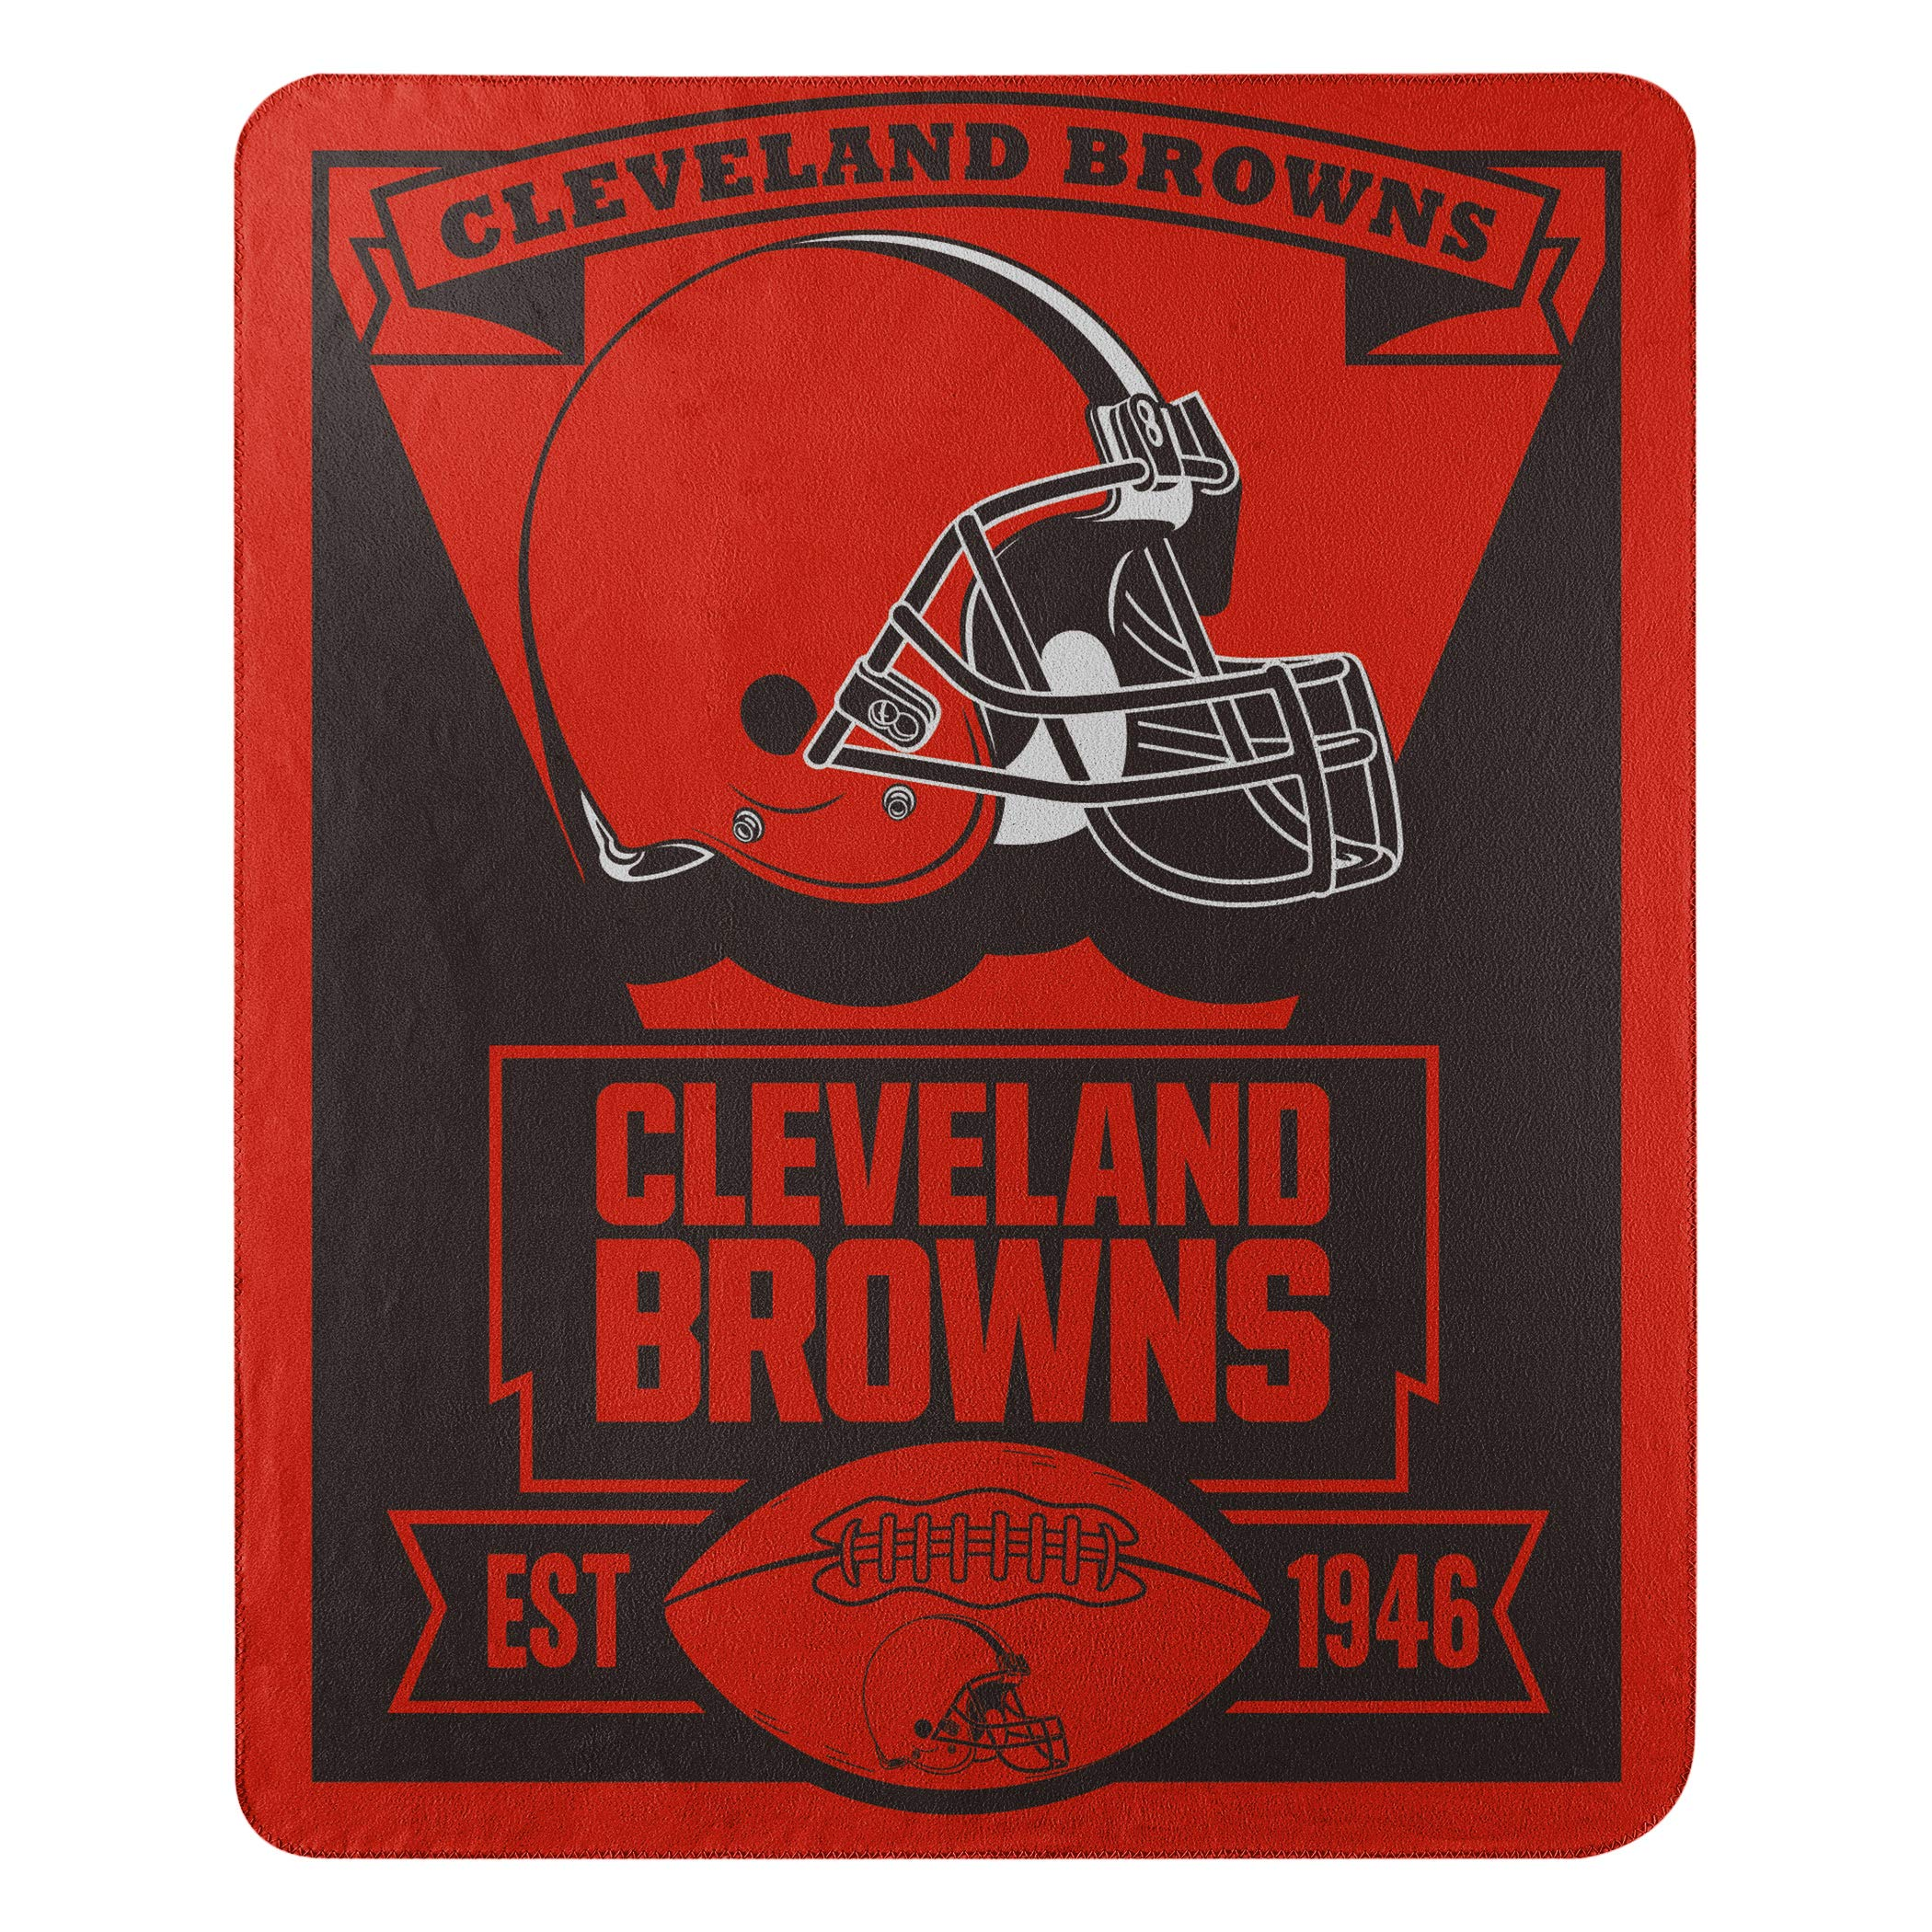 The Northwest Company Officially Licensed NFL Cleveland Browns Marque Printed Fleece Throw Blanket, 50'' x 60'', Multi Color by The Northwest Company